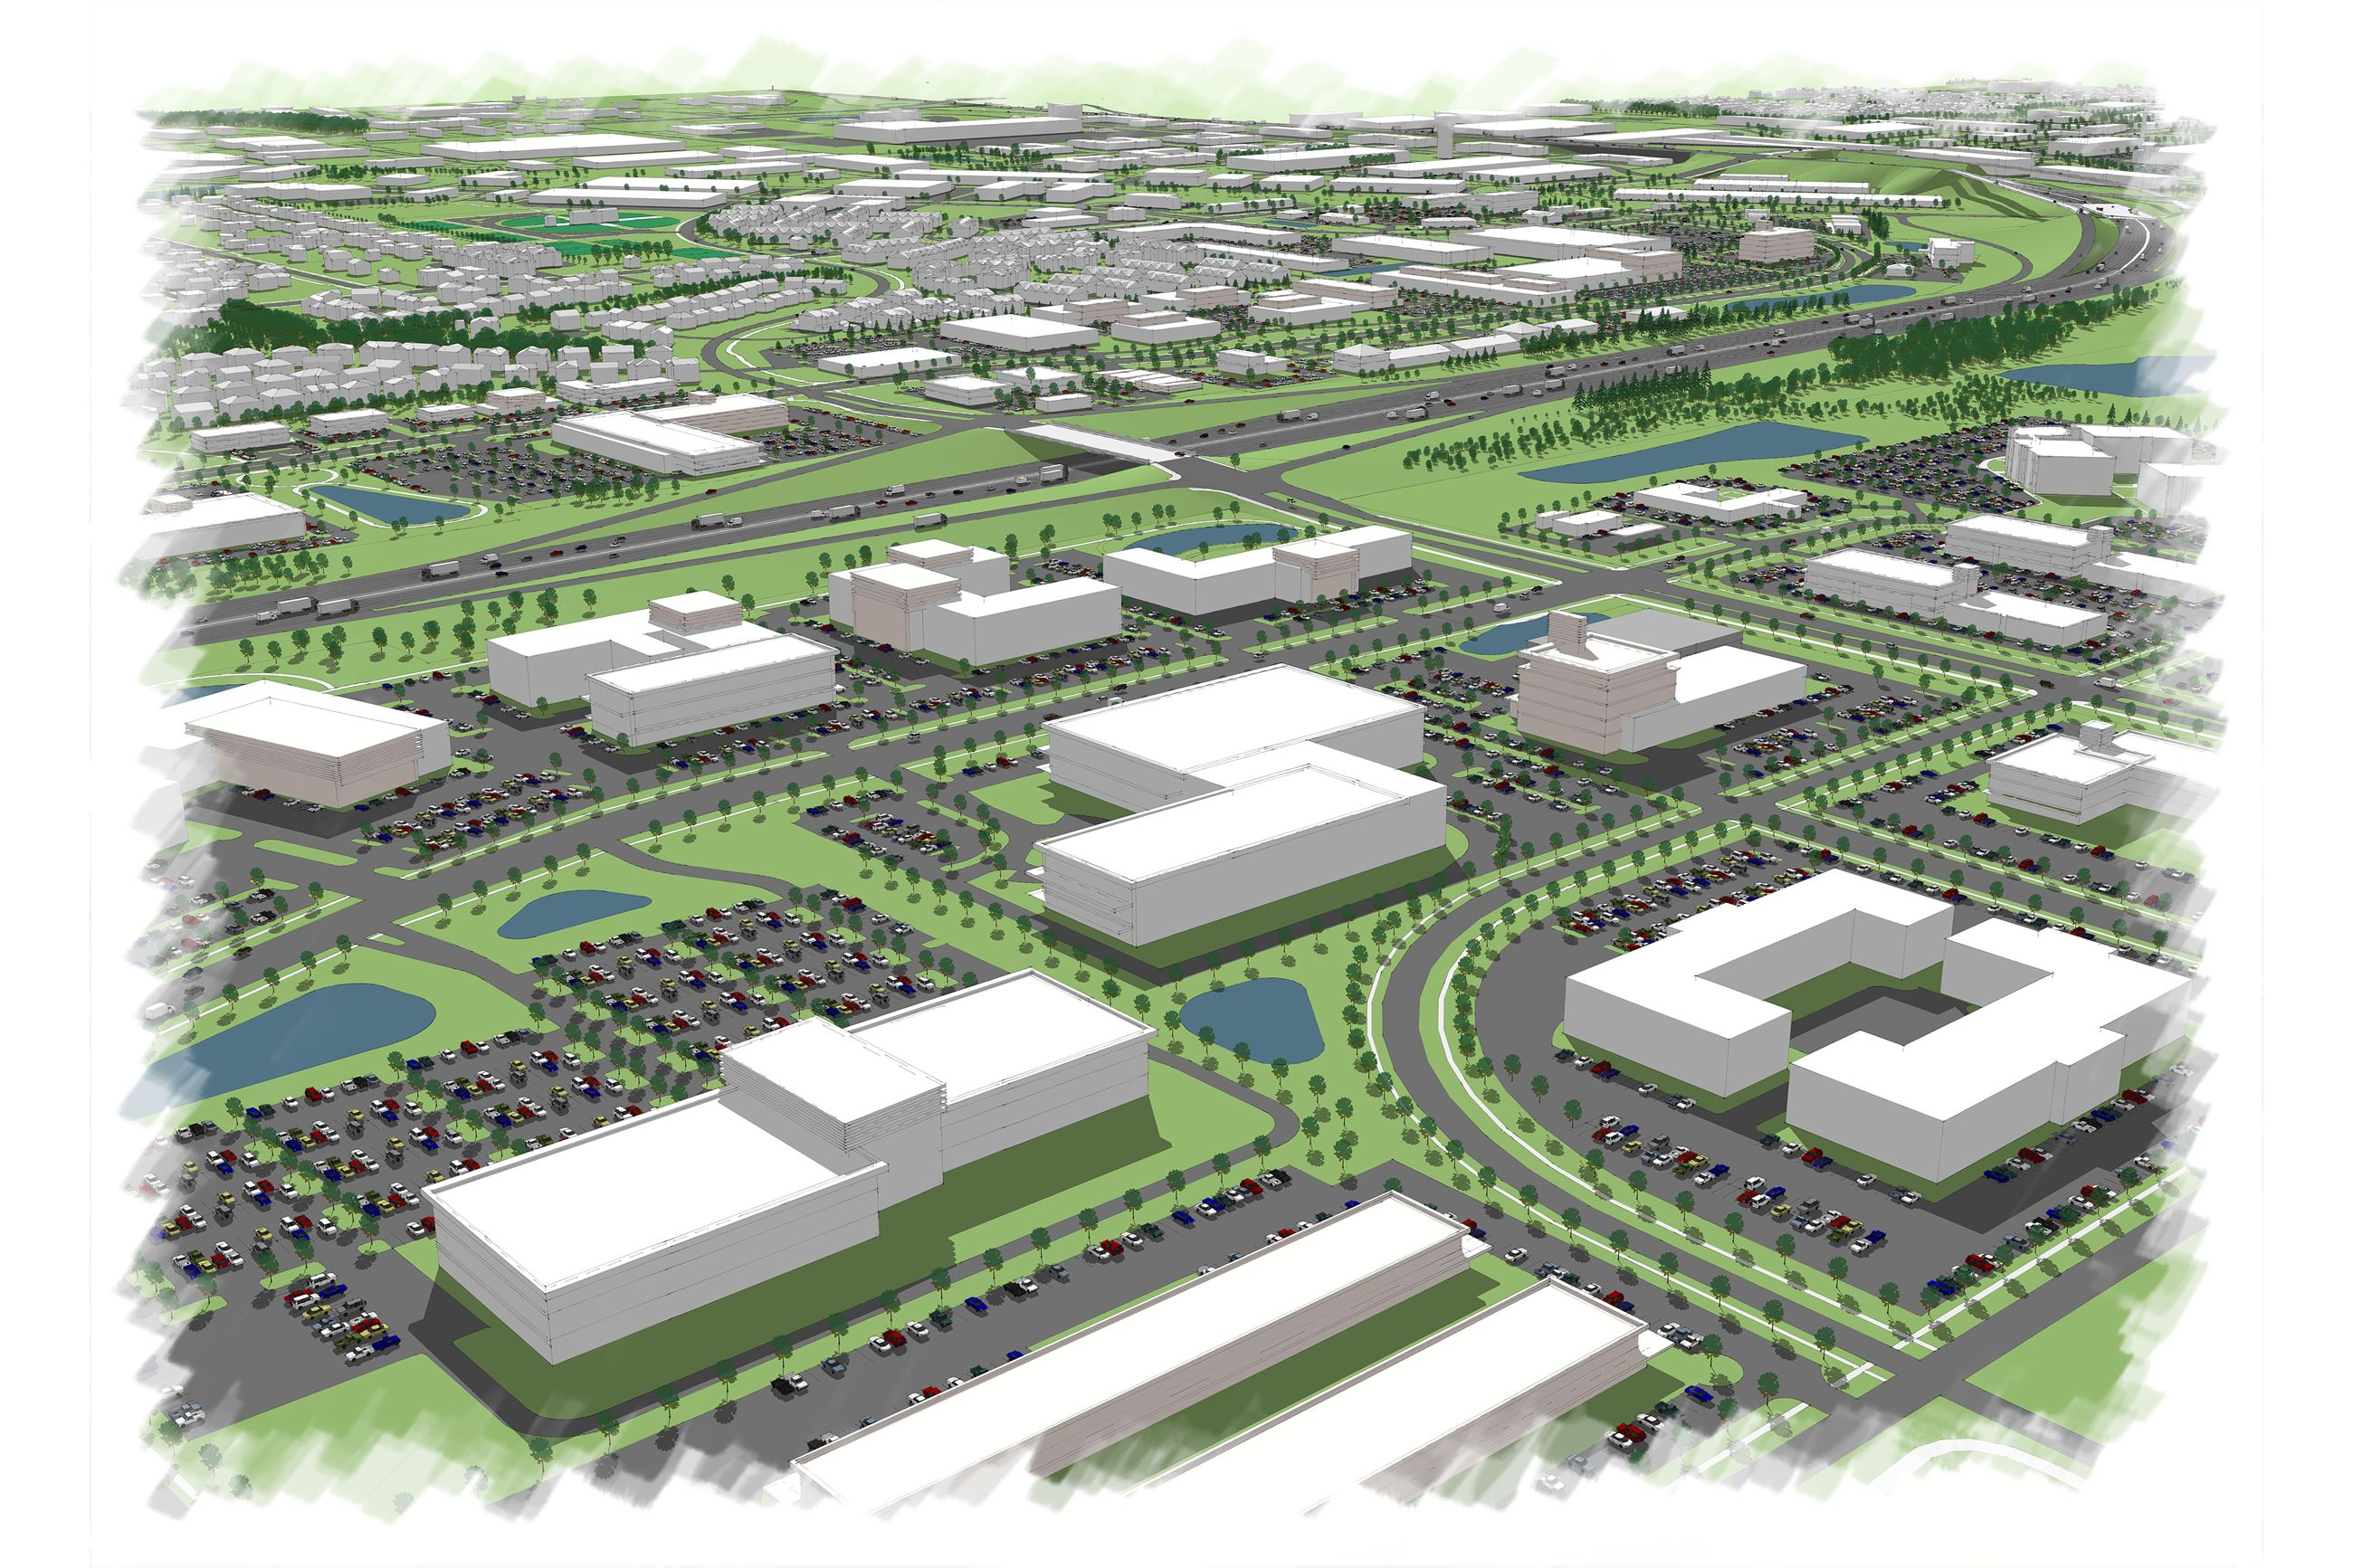 Rendering of the Urban Loop in Urbandale, IA